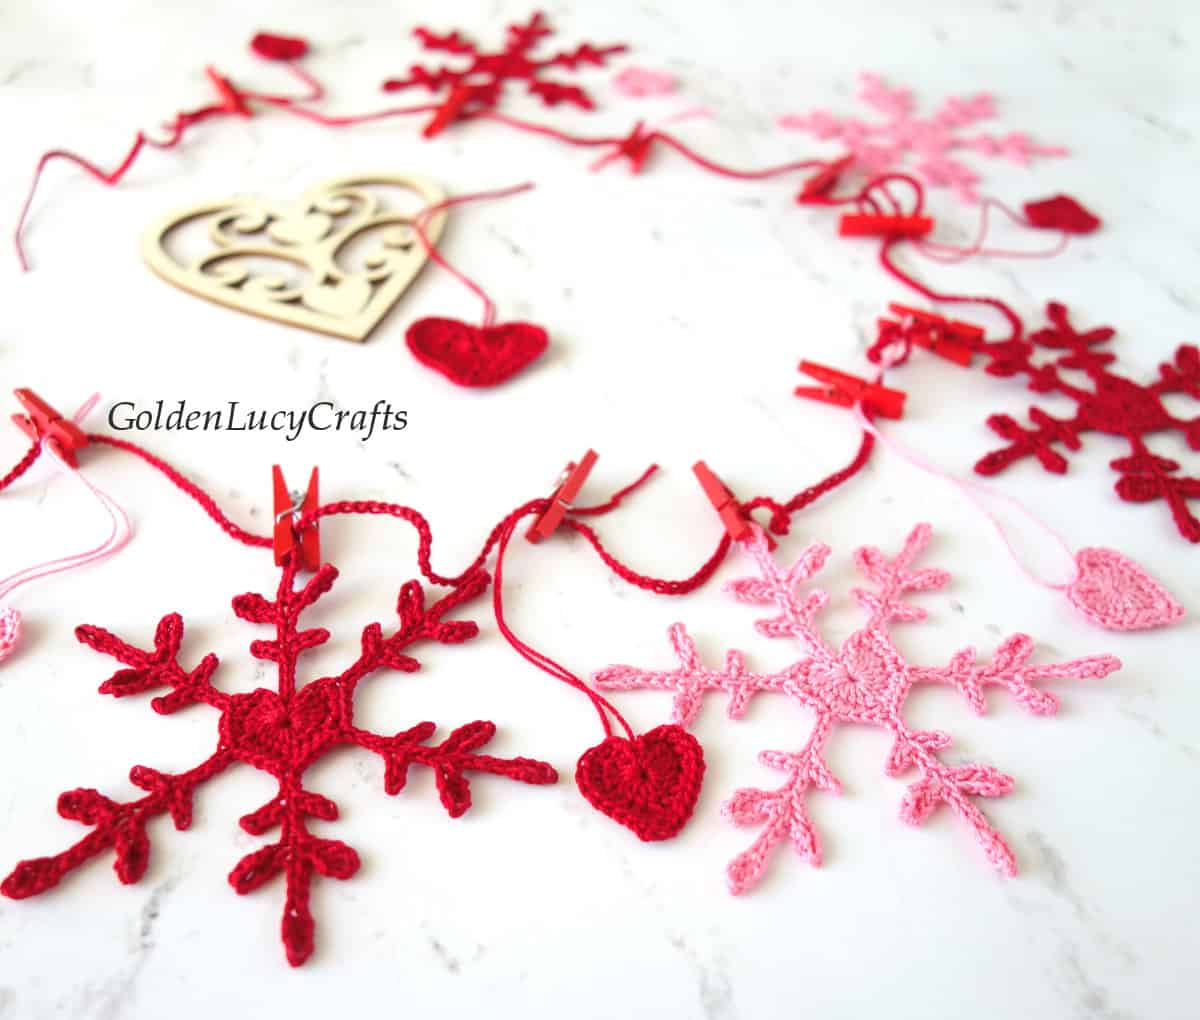 Crochet Valentines Day garland made from snowflakes and hearts in red and pink colors.